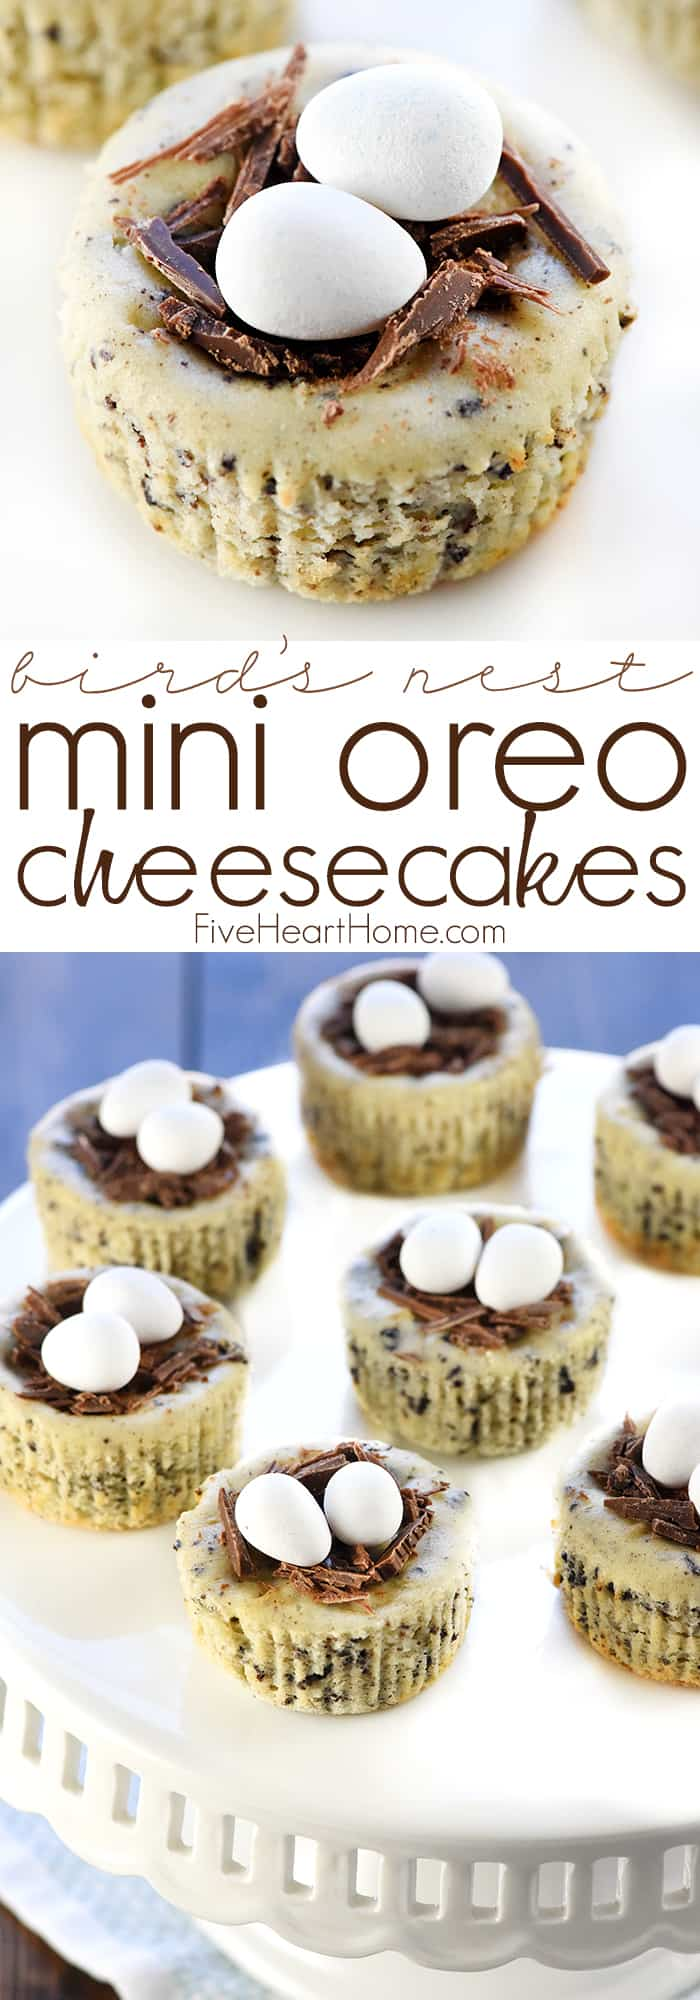 Bird's Nest Mini Oreo Cheesecakes